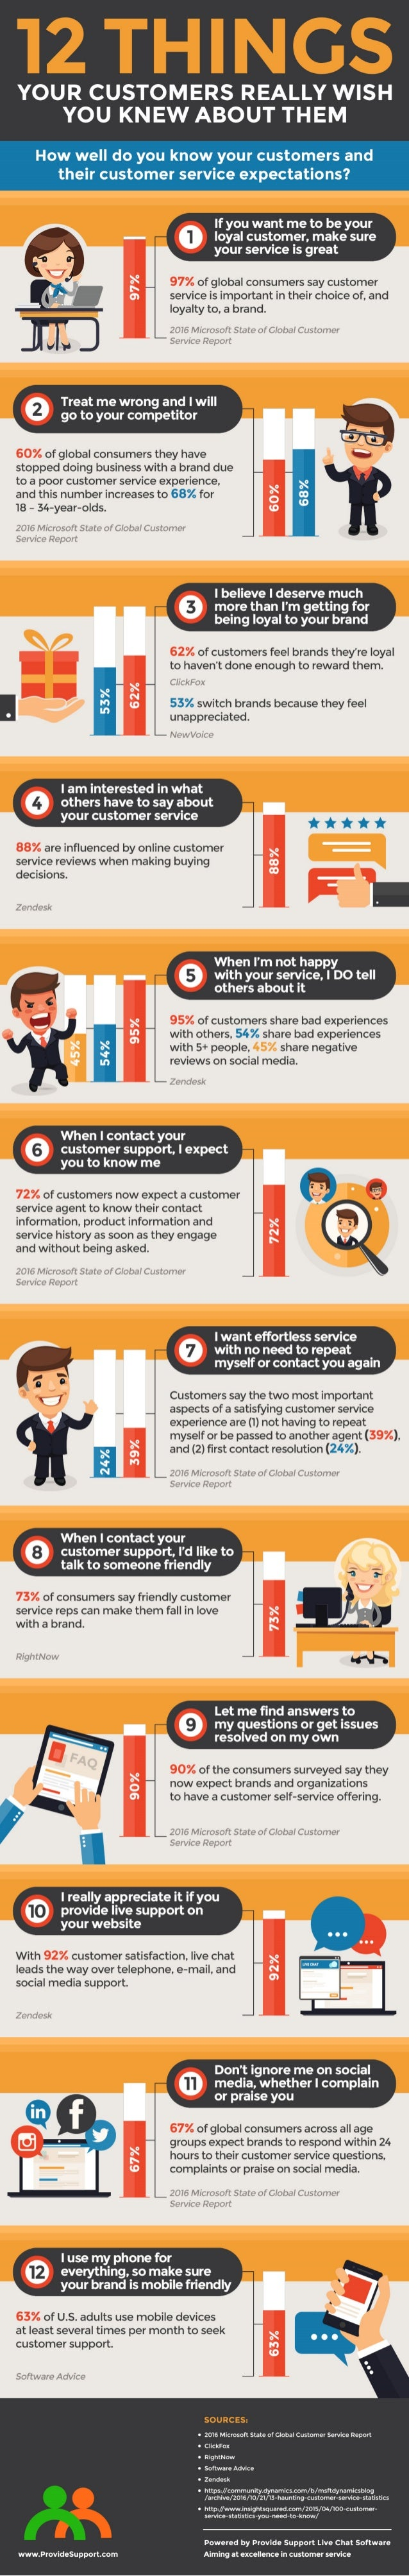 defining and knowing your customer Learn what you need to know about your clients and how to use the information to sell to them more effectively.